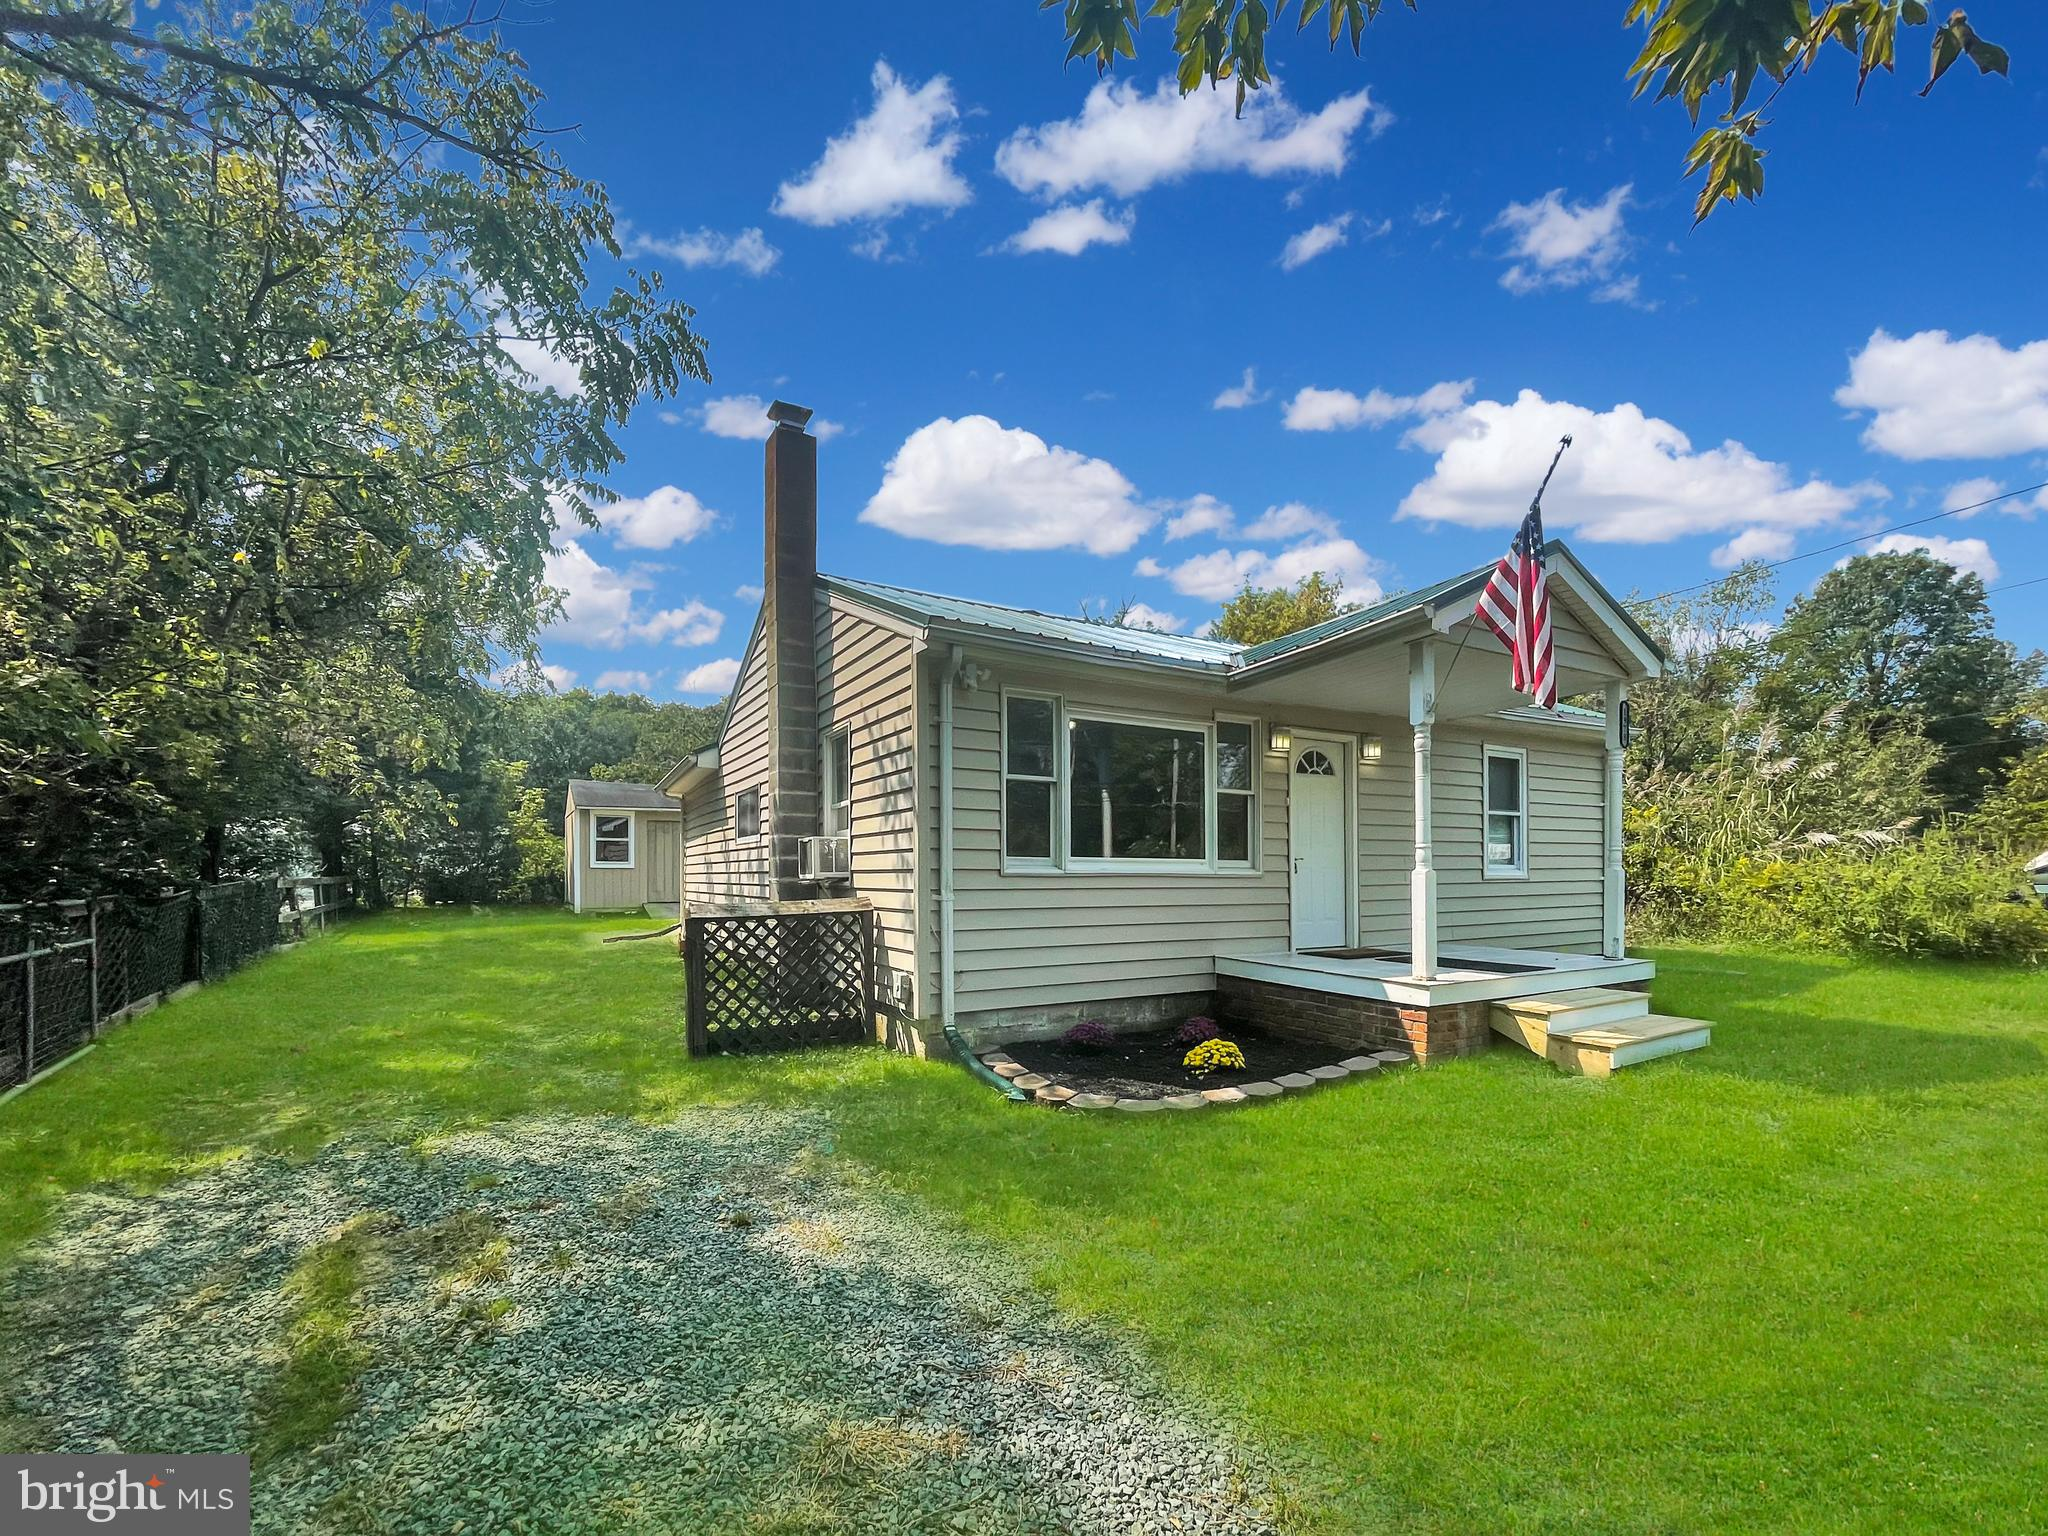 Adorable 3 bed ranch house  in beautiful ceil county.  This property features an open floor plan, ha